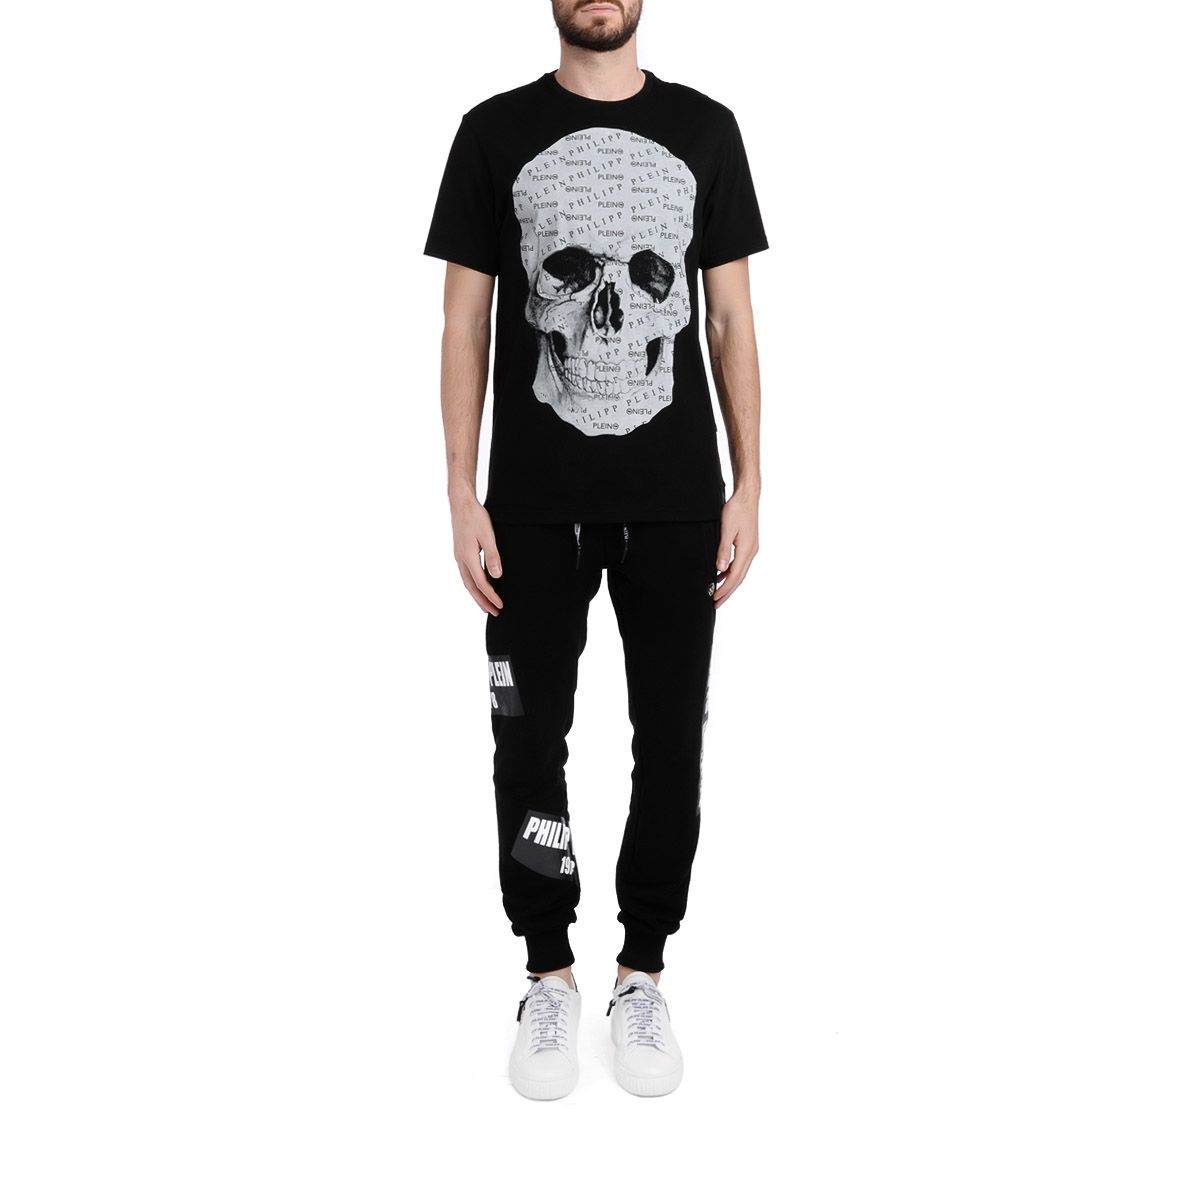 7932294c12 ... Philipp Plein Platinum Cut Black T-shirt With Skull Impression - NERO  ...